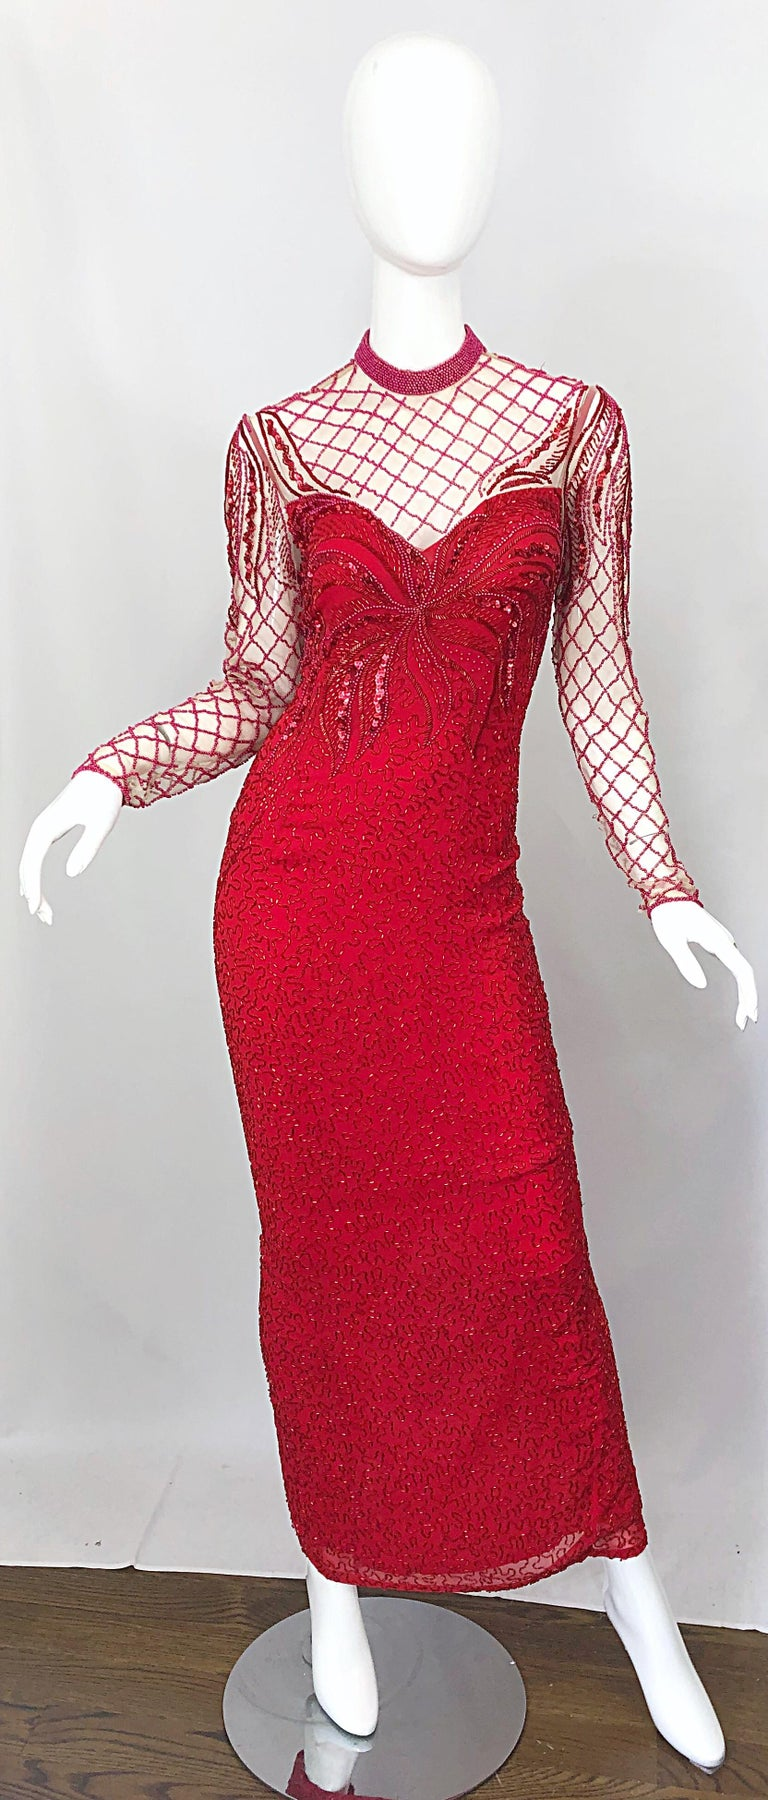 Vintage Oleg Cassini 1990s Lipstick Red Beaded Silk Chiffon 90s Evening Gown For Sale 6